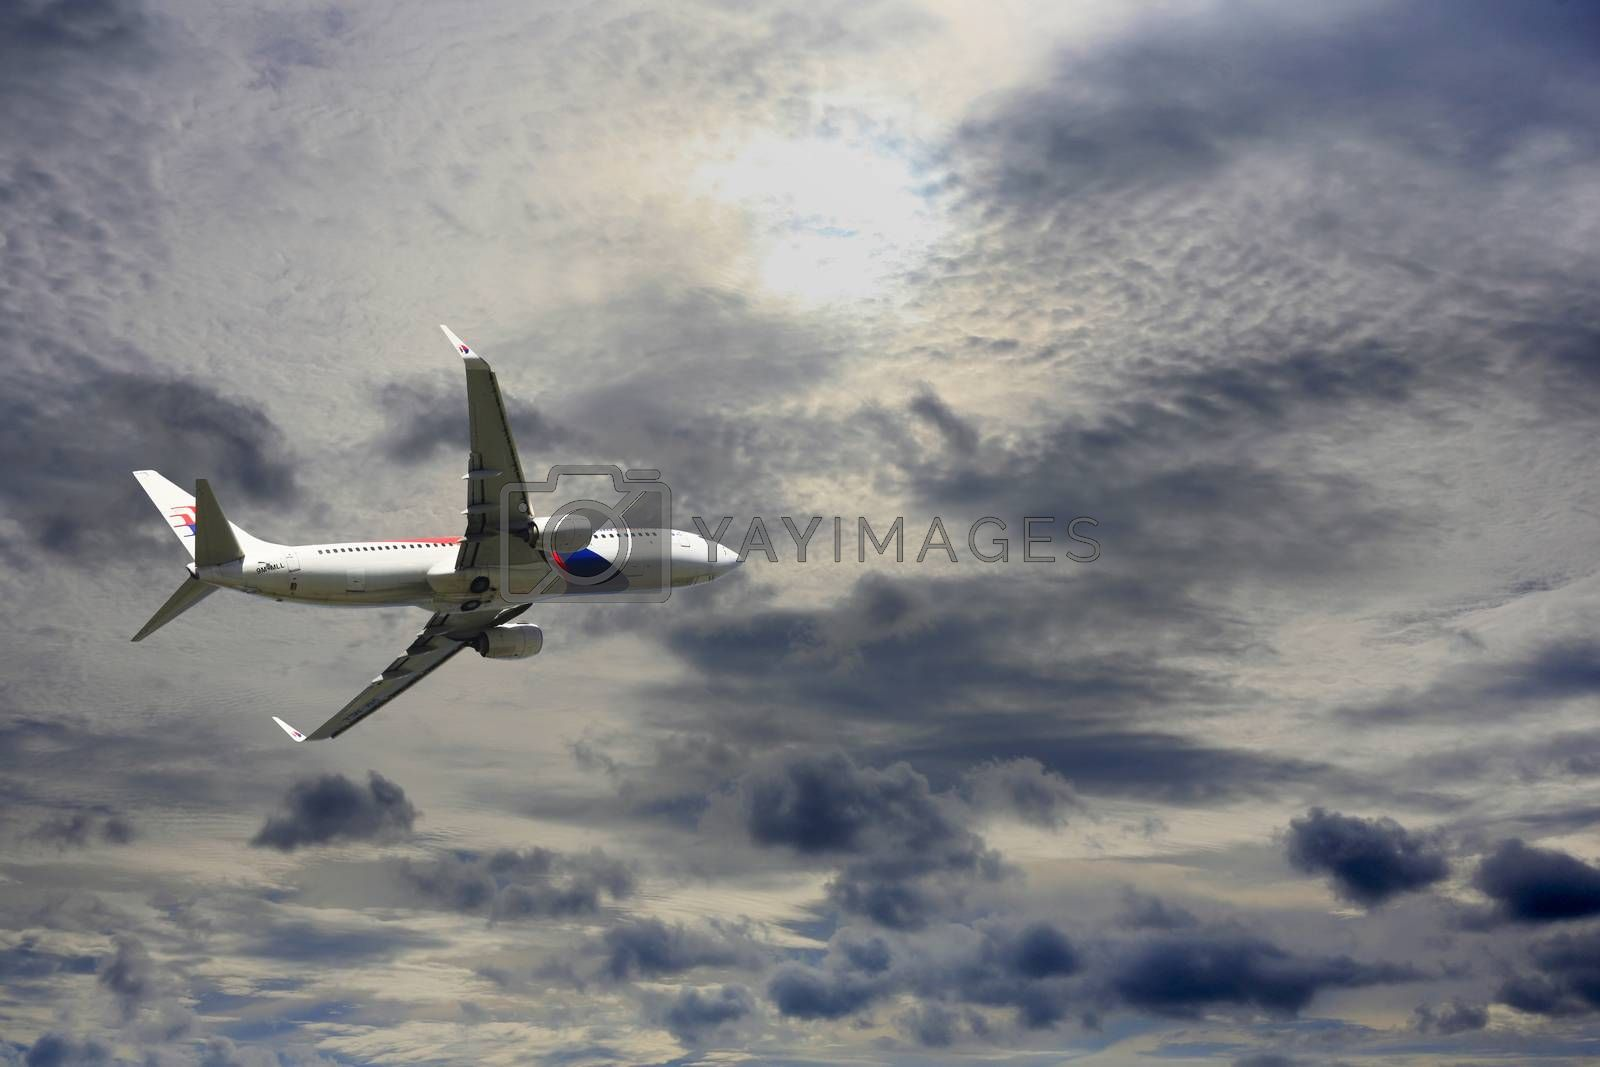 Kota Kinabalu, Malaysia - January 03, 2015: Passenger airplane Boeing 737-4H6 flying travel, trip at flight level over the white clouds